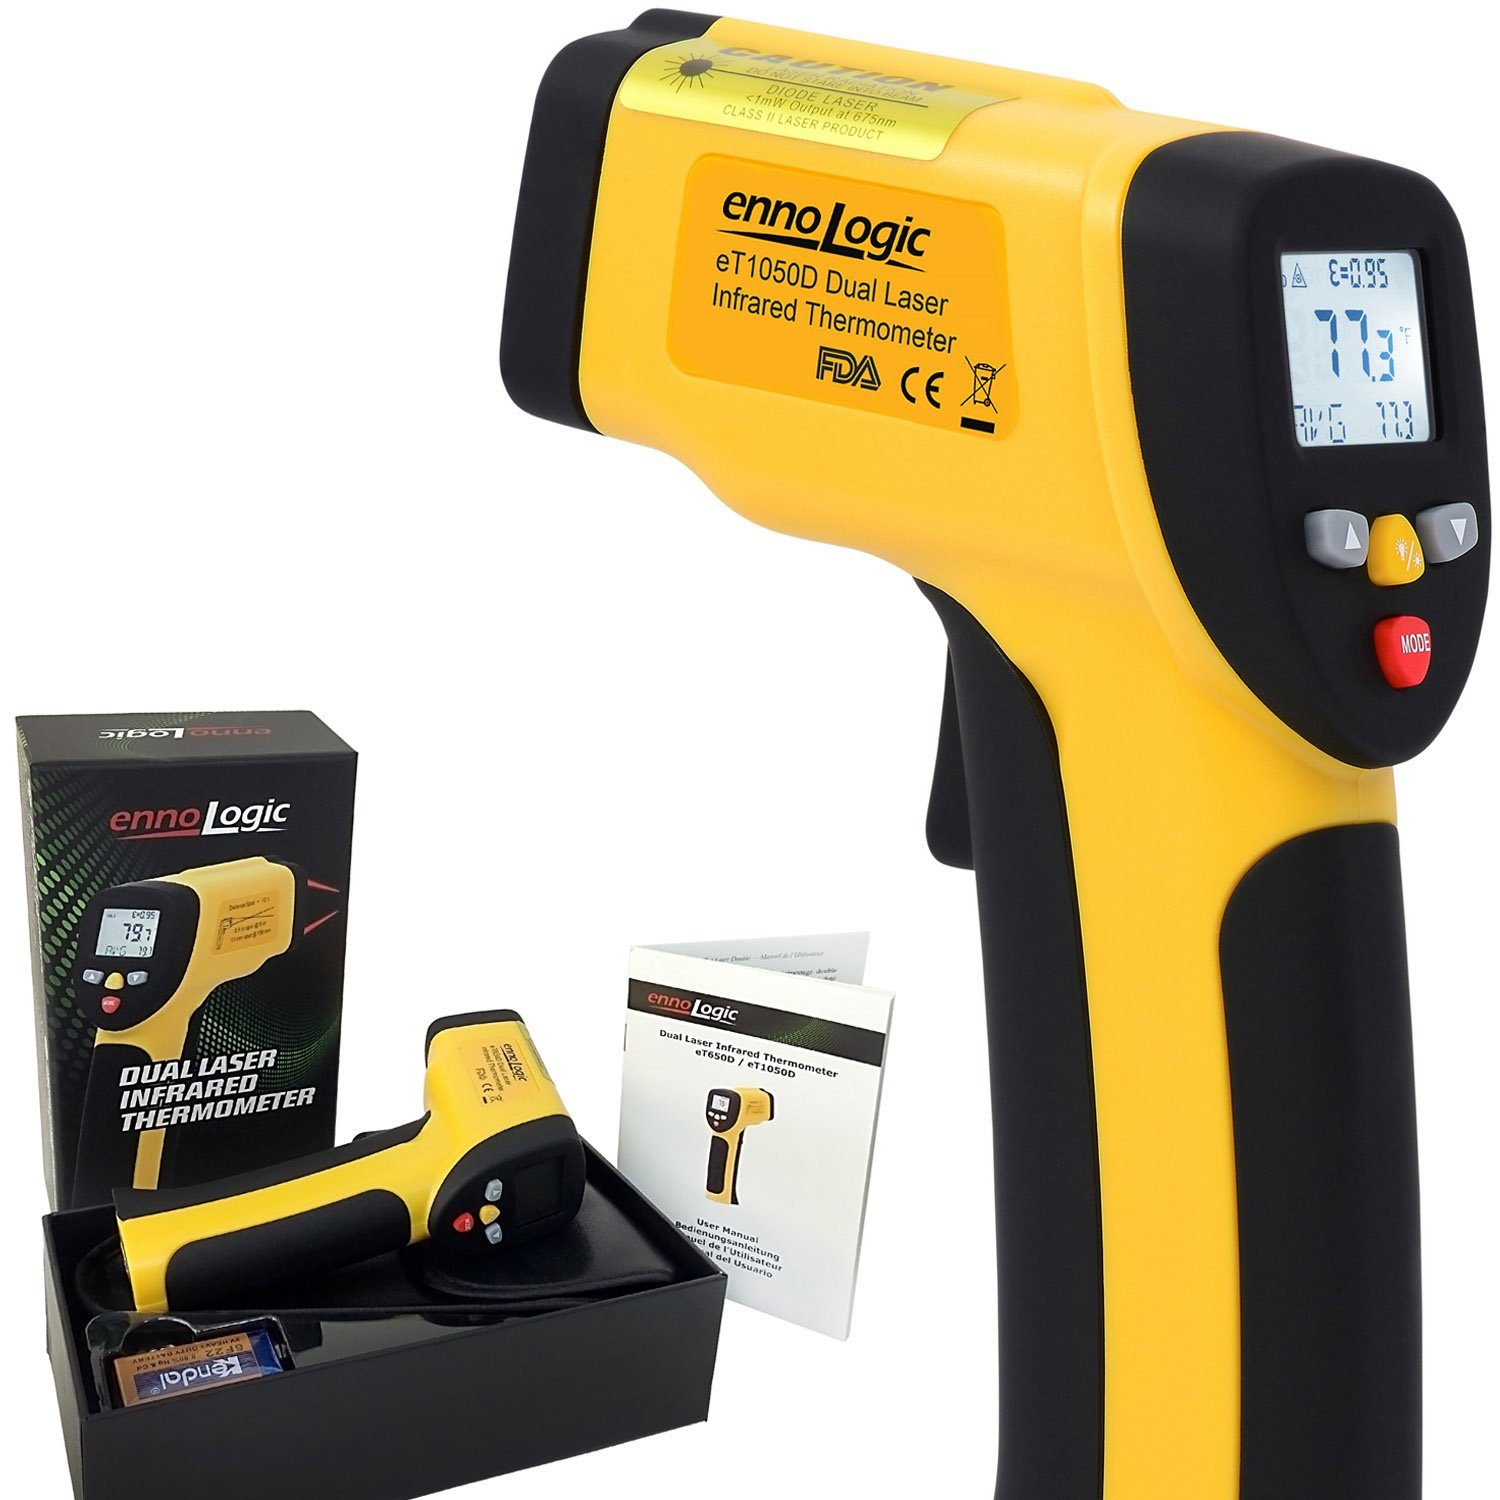 Temperature Gun by ennoLogic - Accurate High Temperature Dual Laser Infrared Thermometer -58°F to 1922°F - Digital Surface IR Thermometer eT1050D w/NIST Certificate